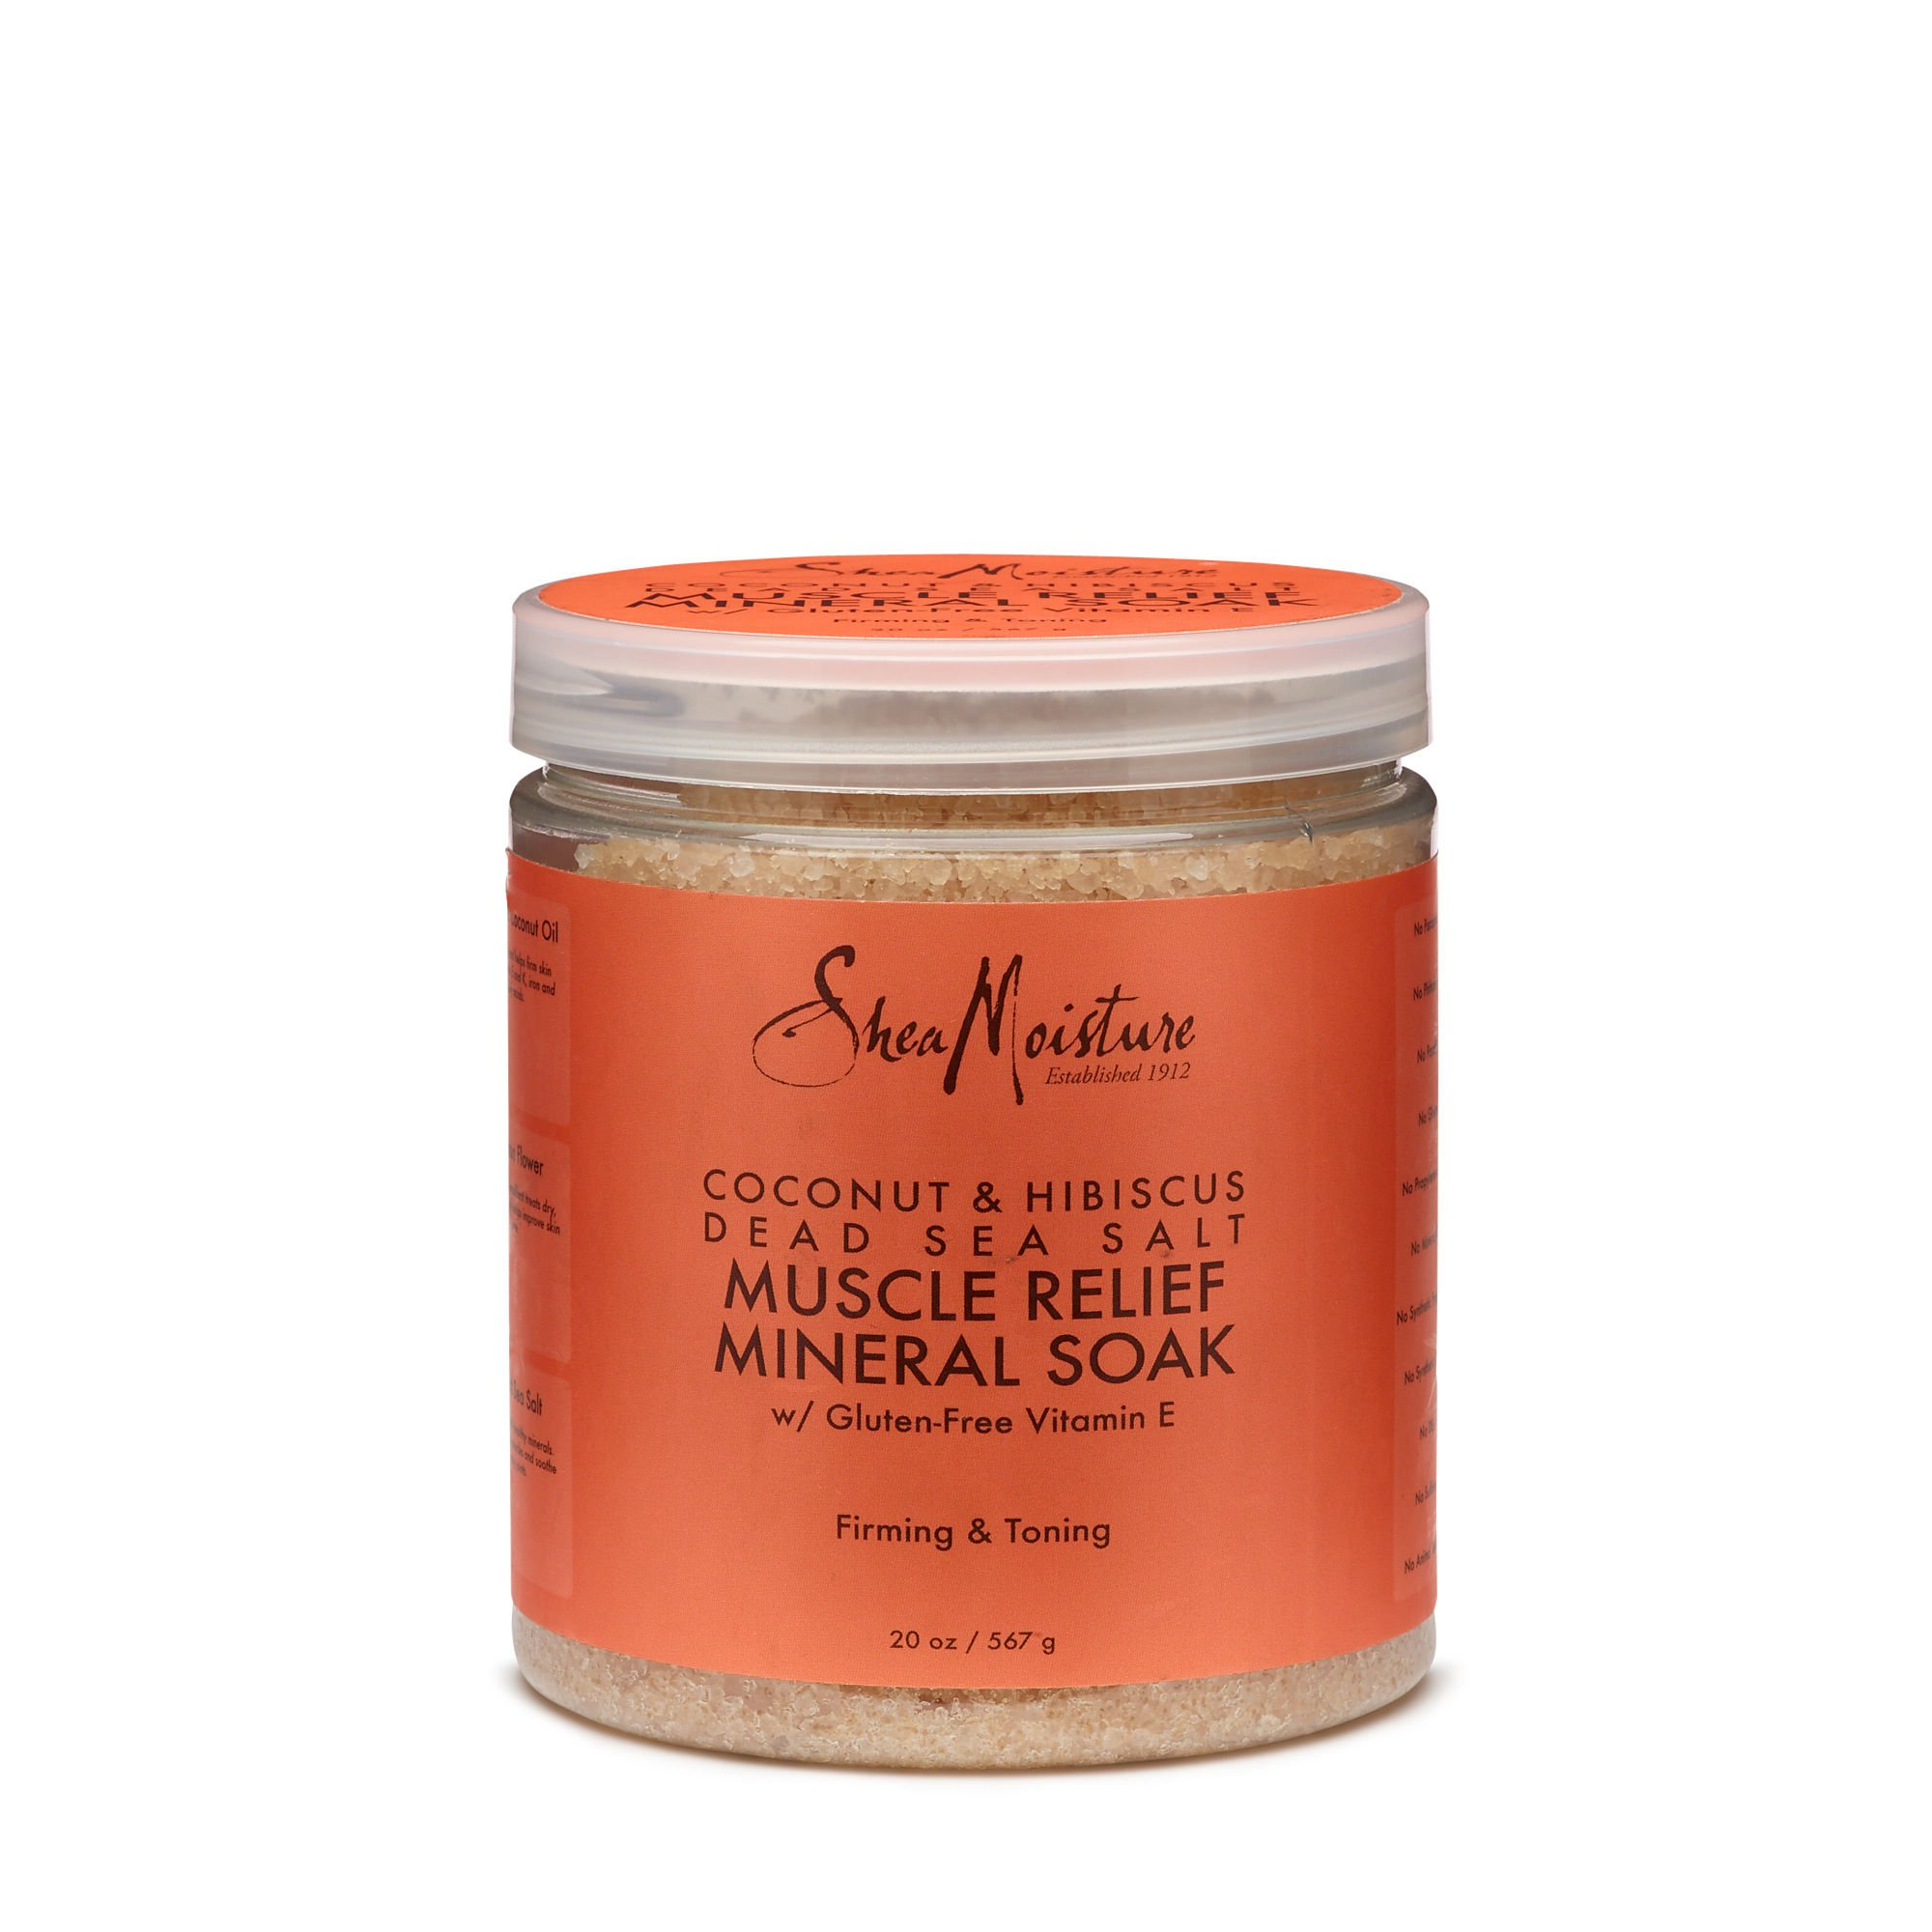 Shea Moisture Coconut & Hibiscus Dead Sea Salt Muscle Relief Mineral Soak for Unisex, 20 Ounce